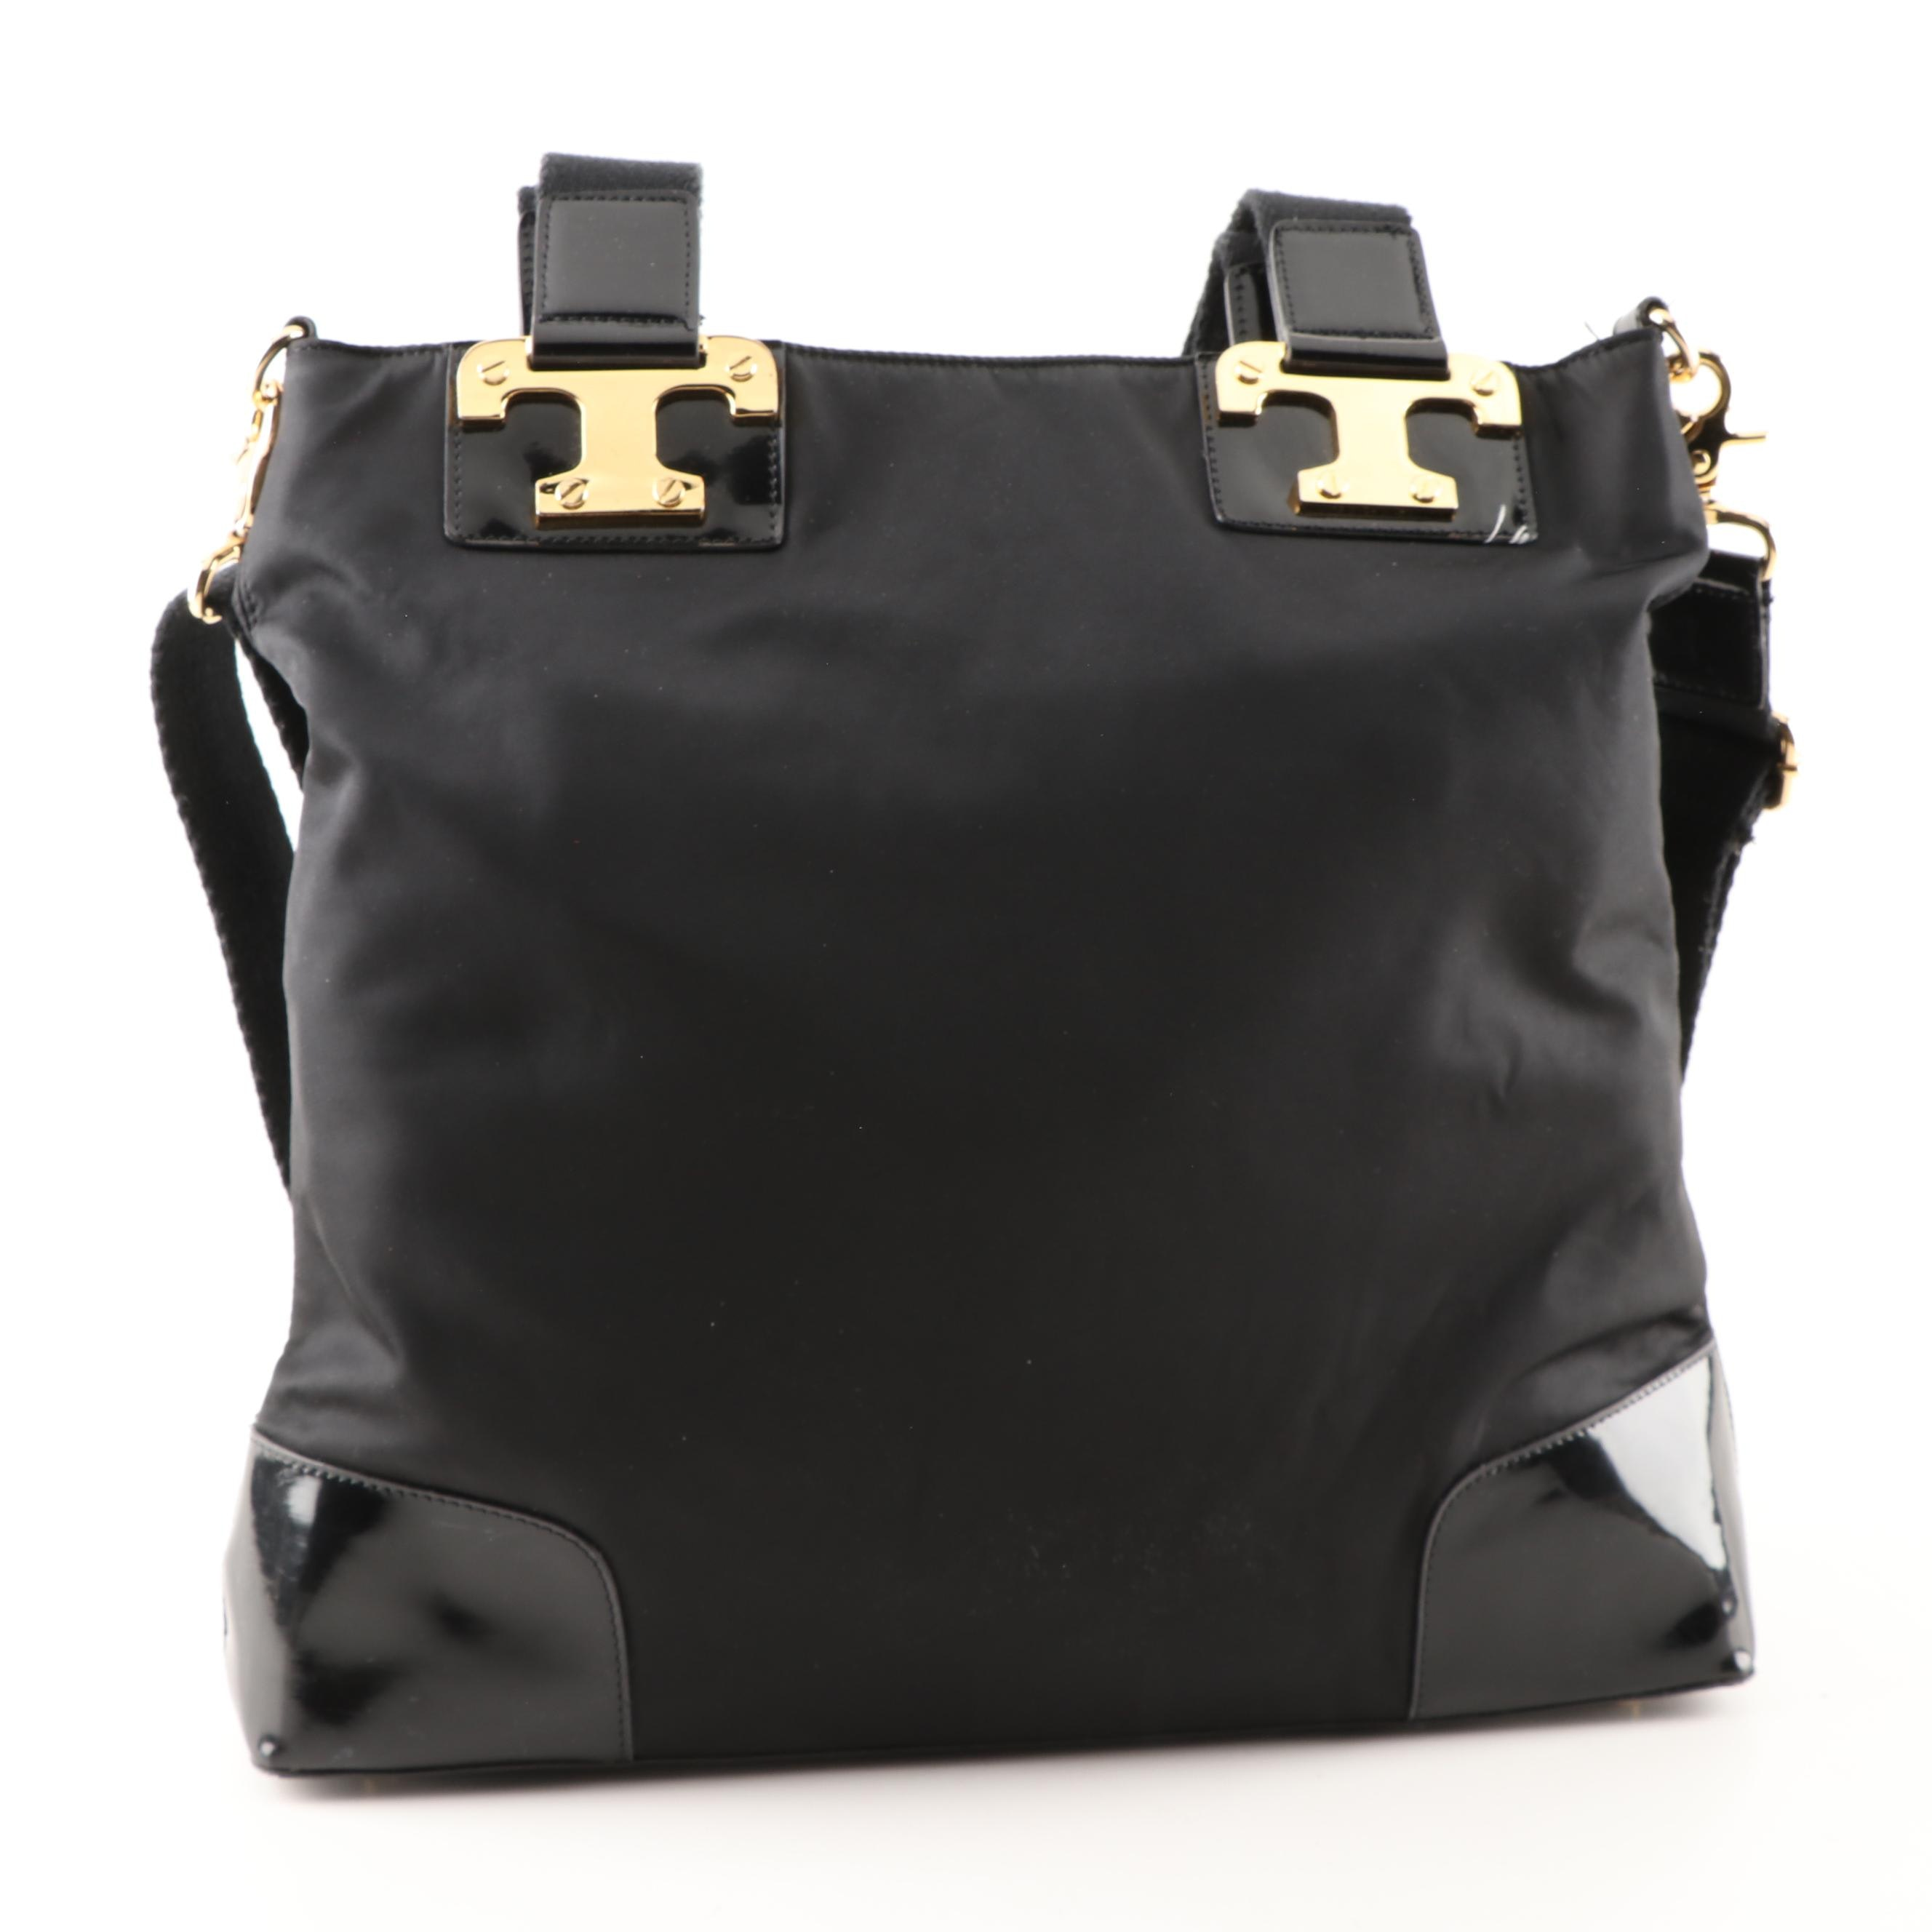 Tory Burch Black Nylon and Patent Leather Crossbody Tote Bag